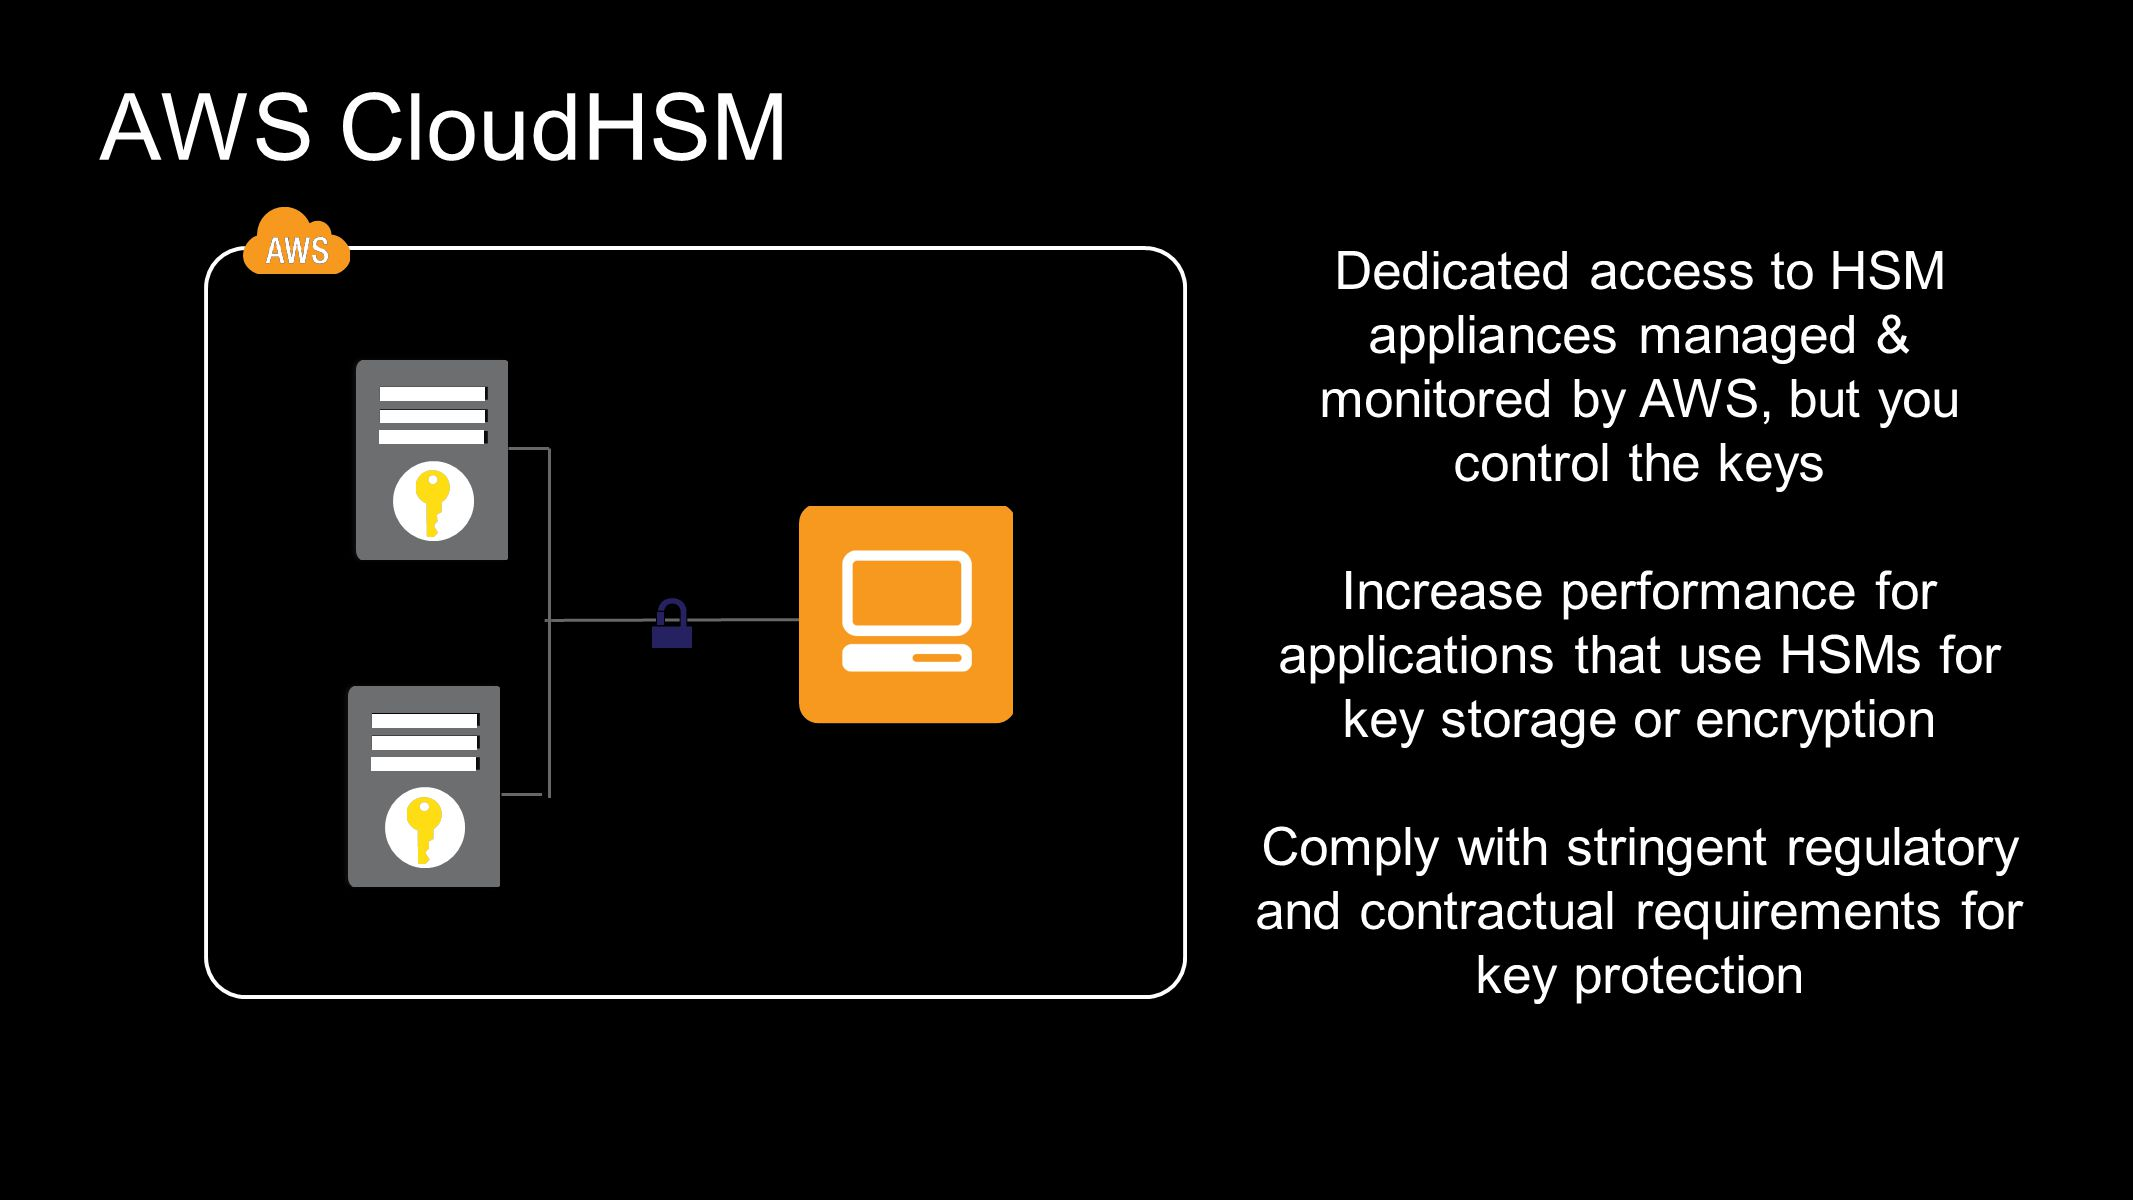 AWS CloudHSM Dedicated access to HSM appliances managed & monitored by AWS, but you control the keys.